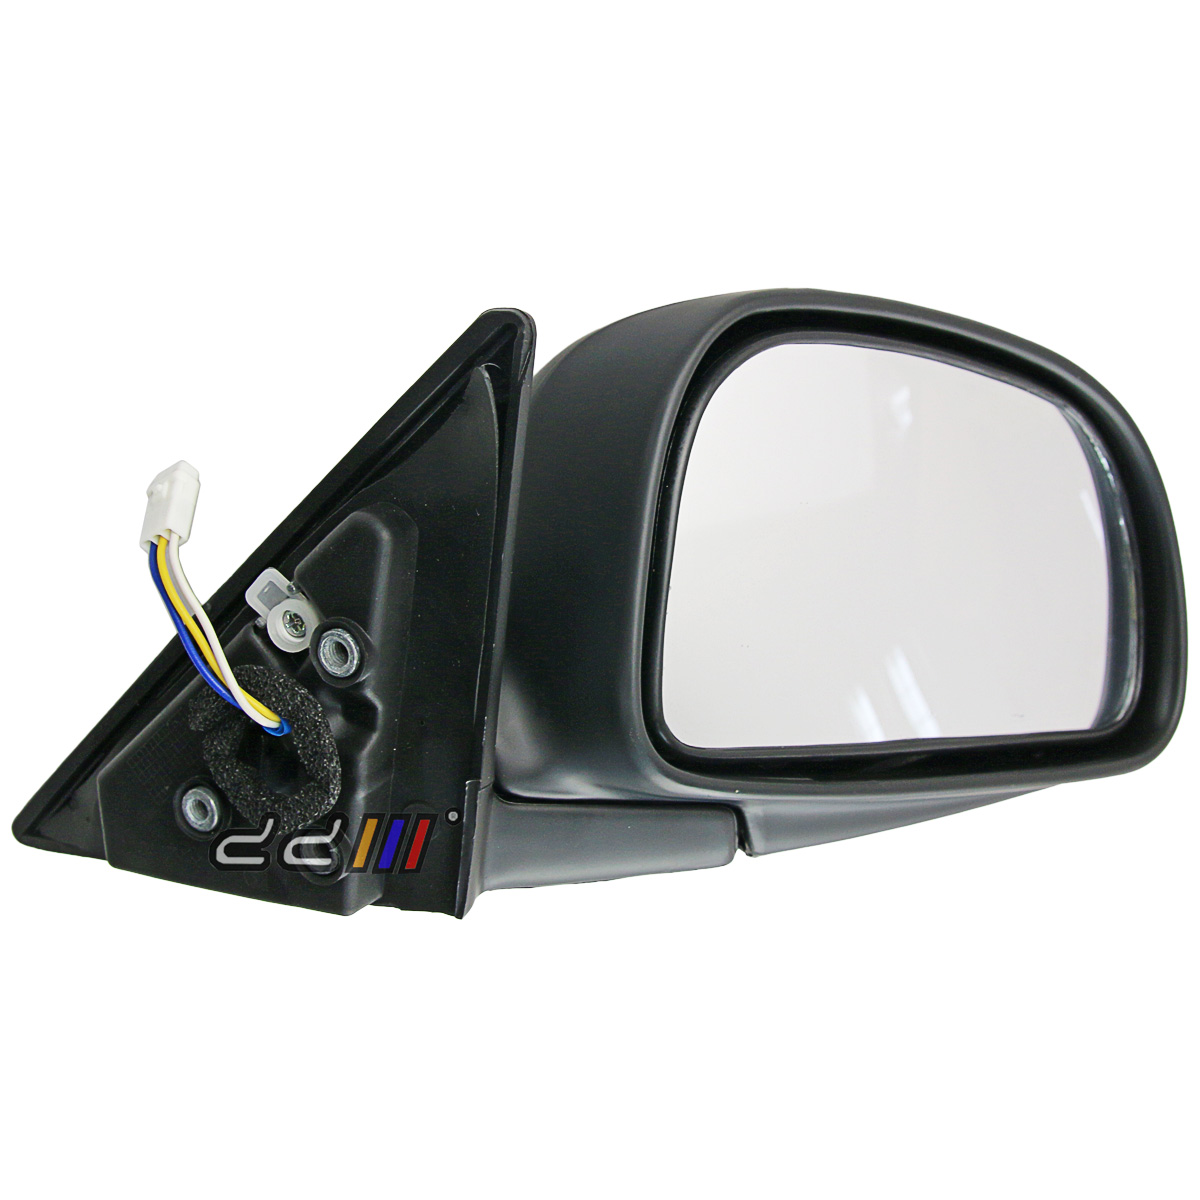 New Evo Lancer 1 2 3 CD9A CE9A Side Door Mirror Wira Arena Jumbuck M21 Manual